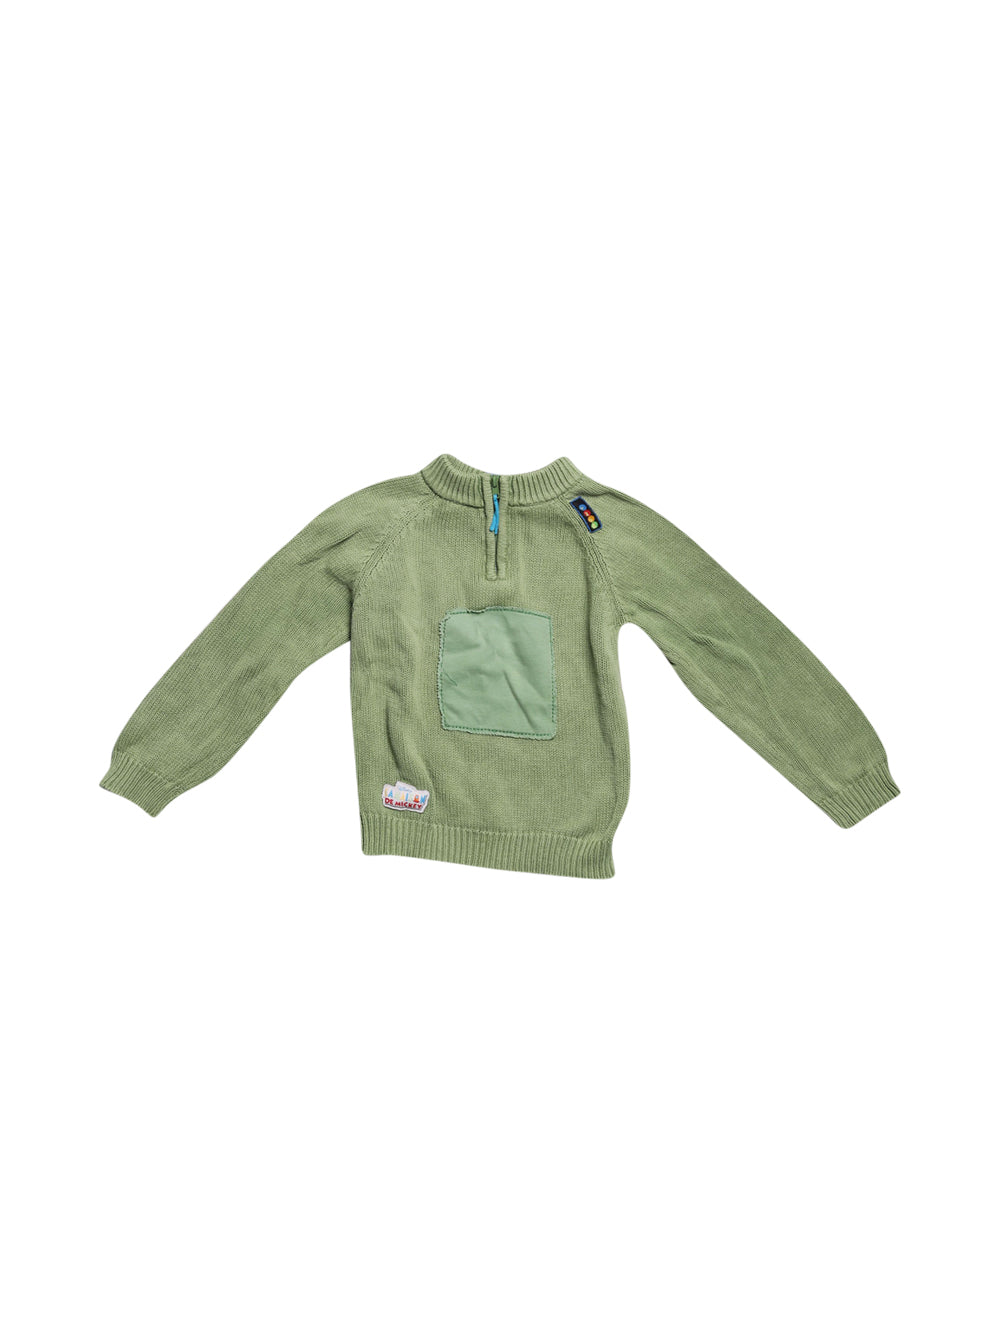 Front photo of Preloved Disney Green Boy's sweater - size 3-4 yrs